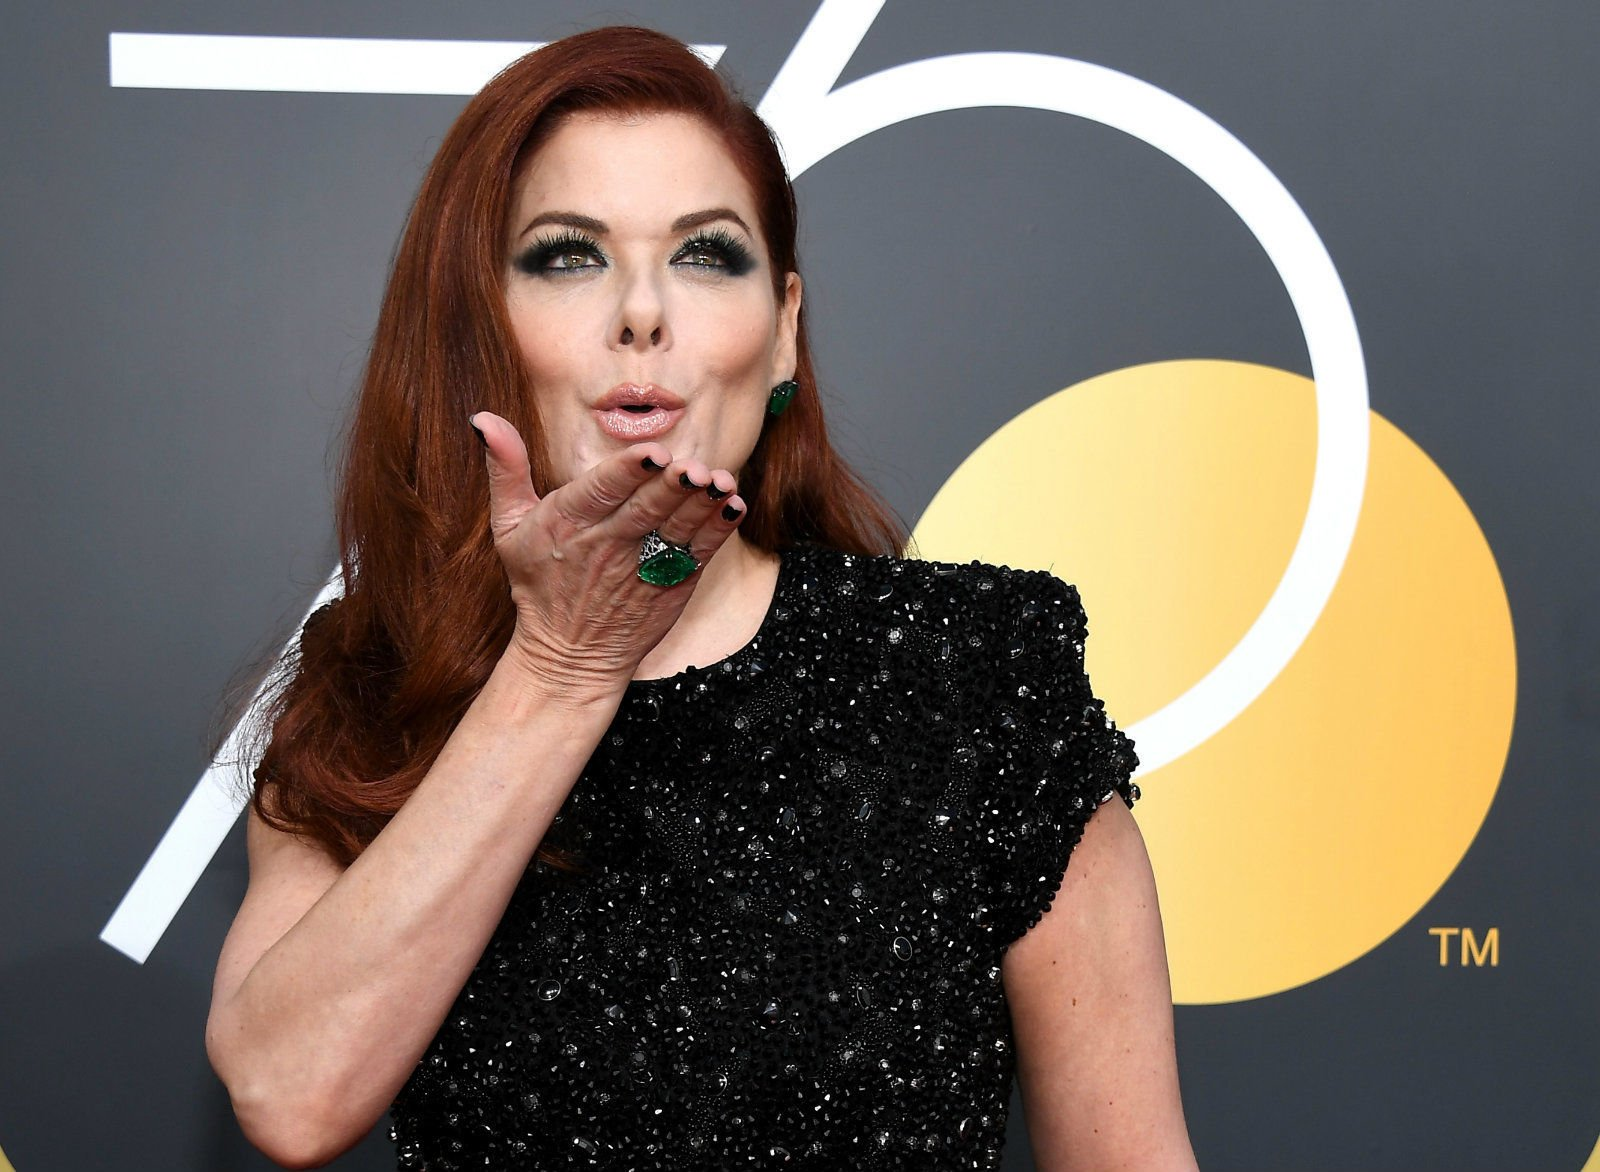 Will & Grace star Debra Messing calls out E! over gender pay gap during an interview with E!